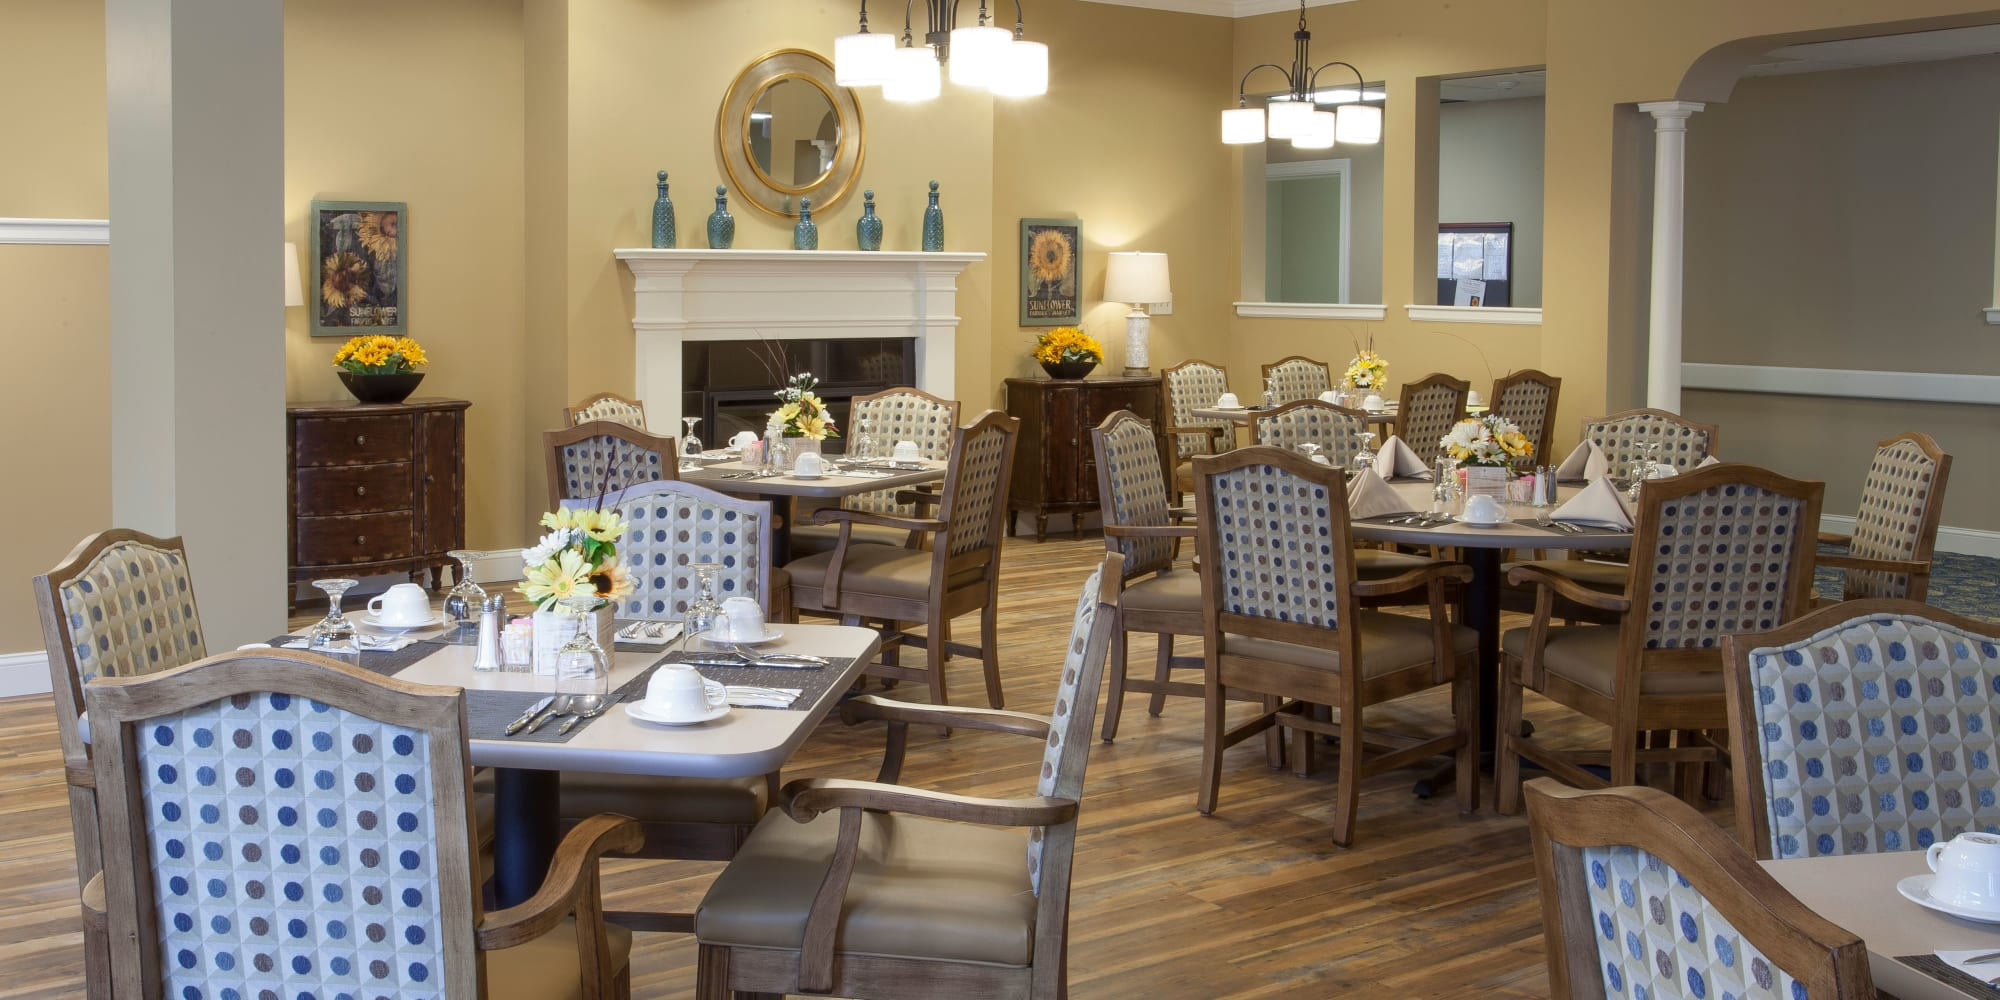 Resident dining room at Keystone Place at  Buzzards Bay in Buzzards Bay, Massachusetts.